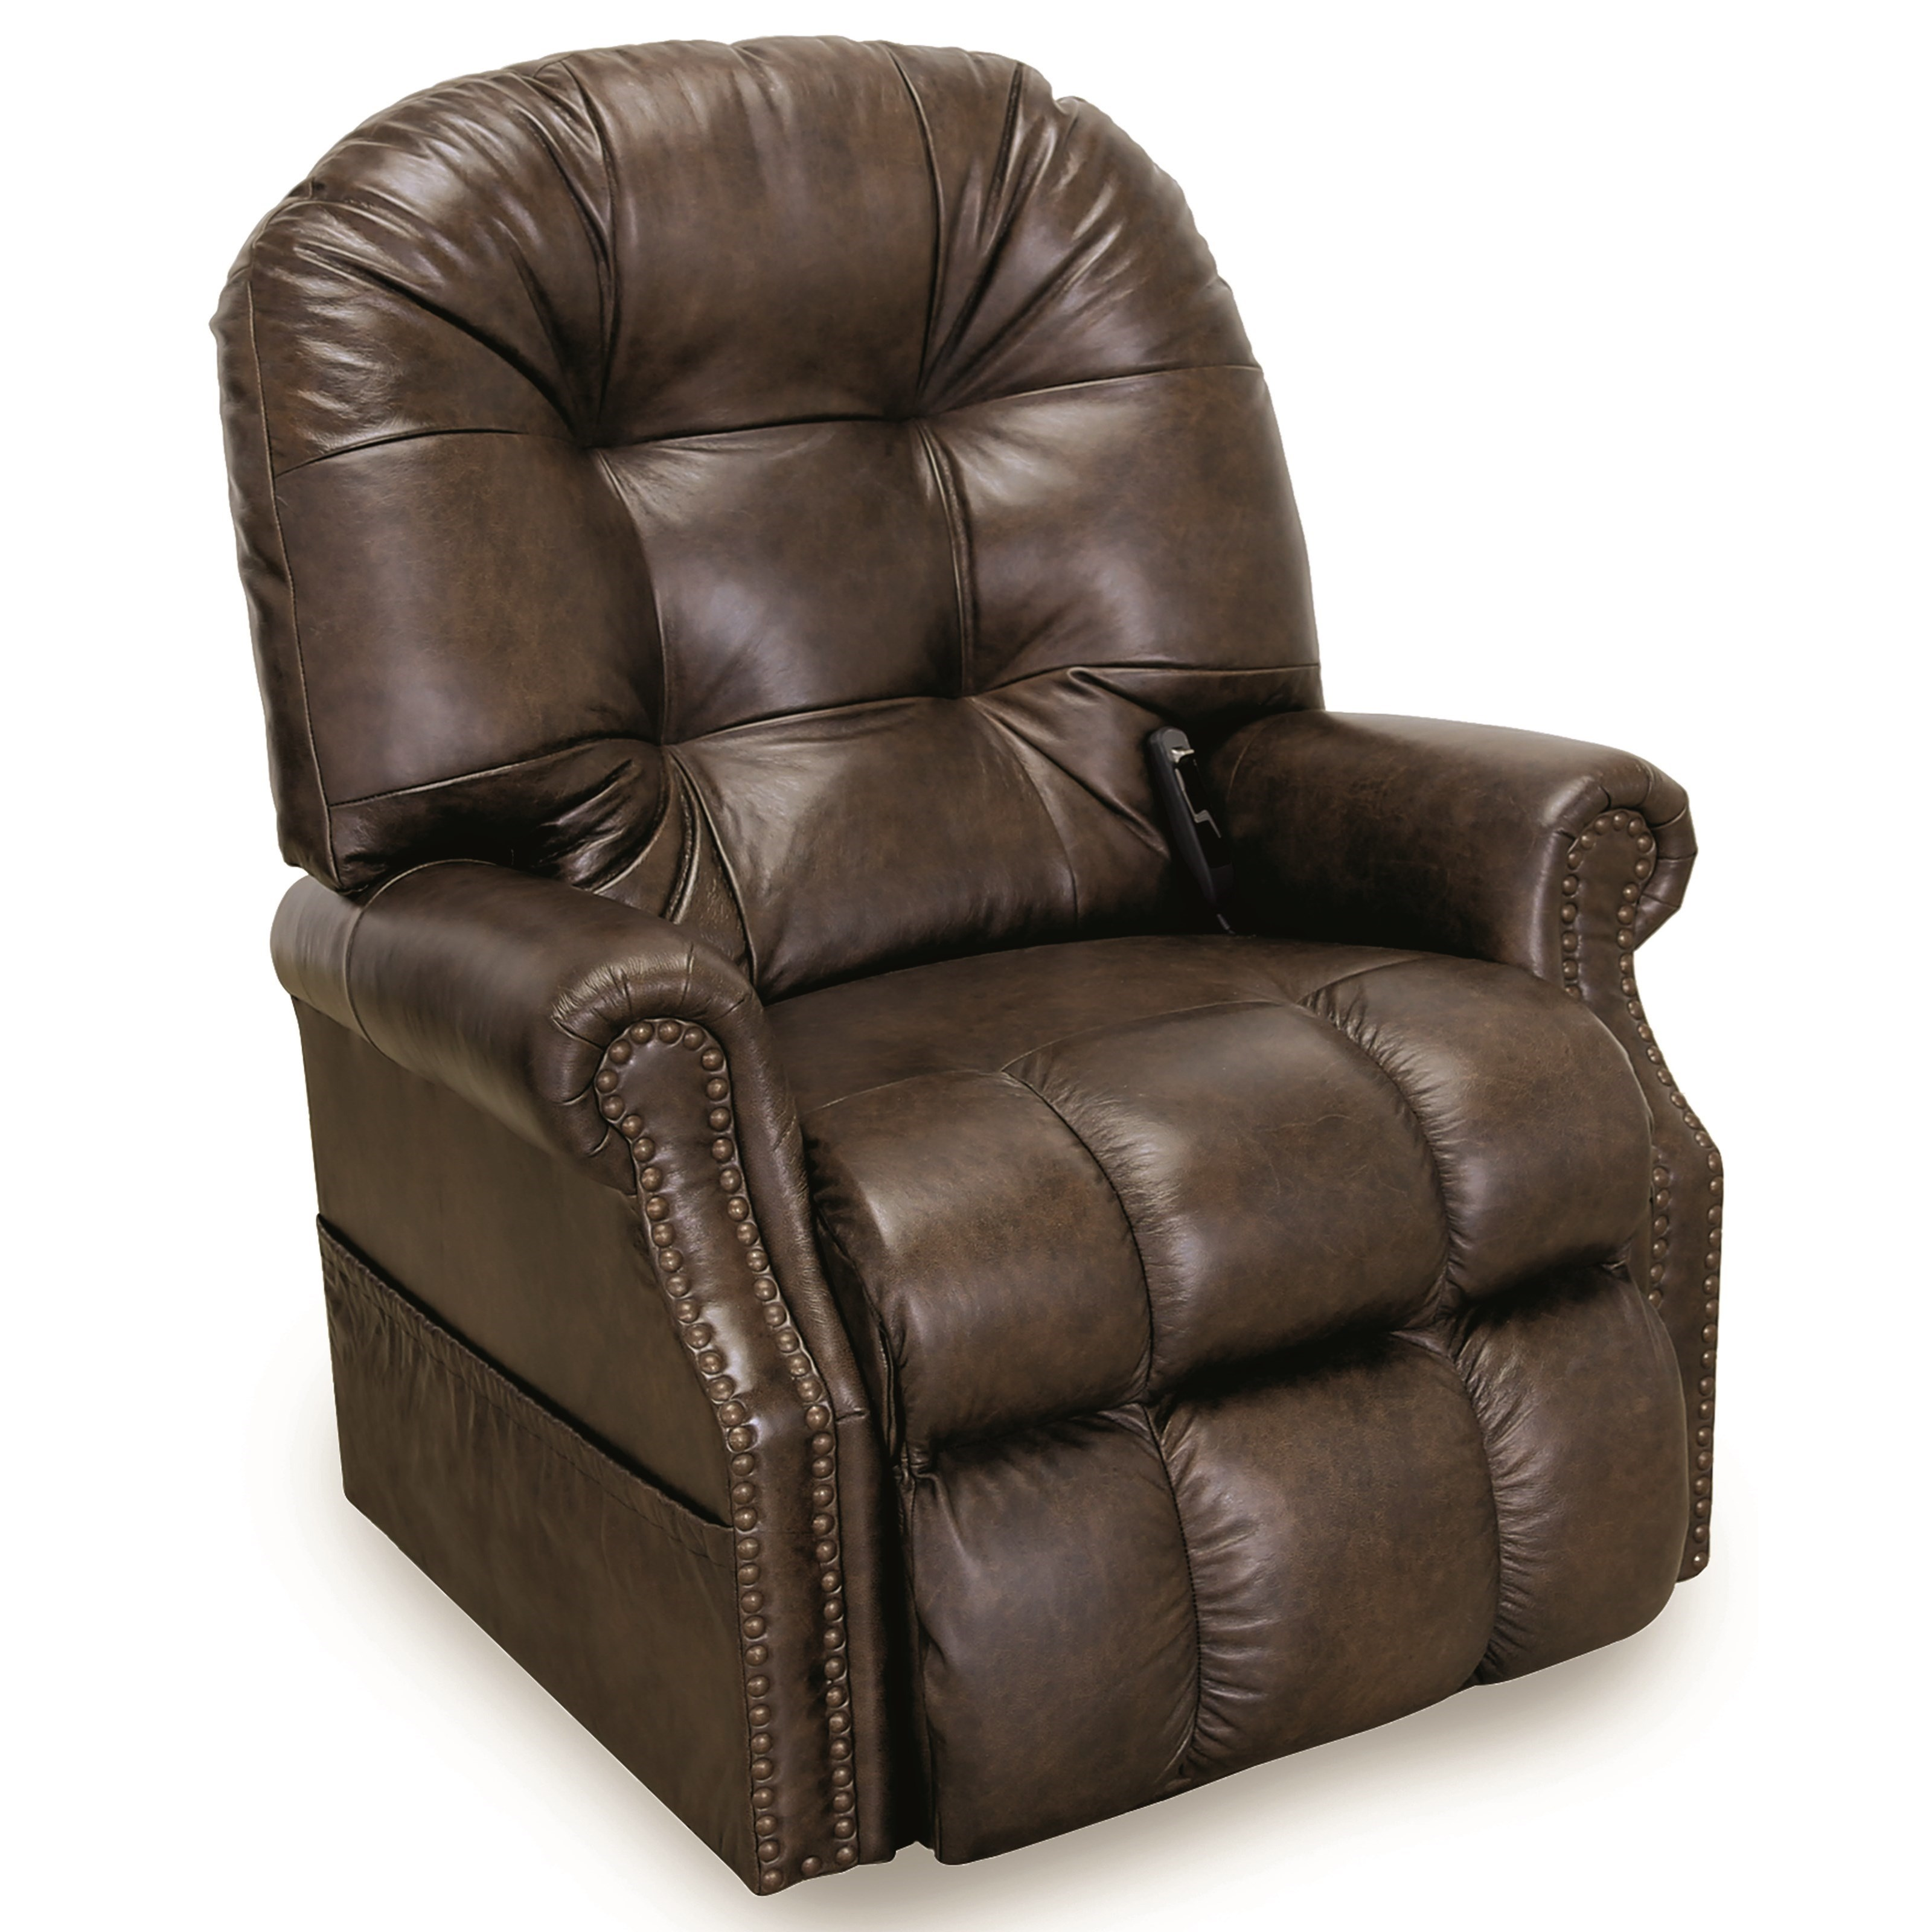 Austin Lift Recliner by Franklin at Virginia Furniture Market